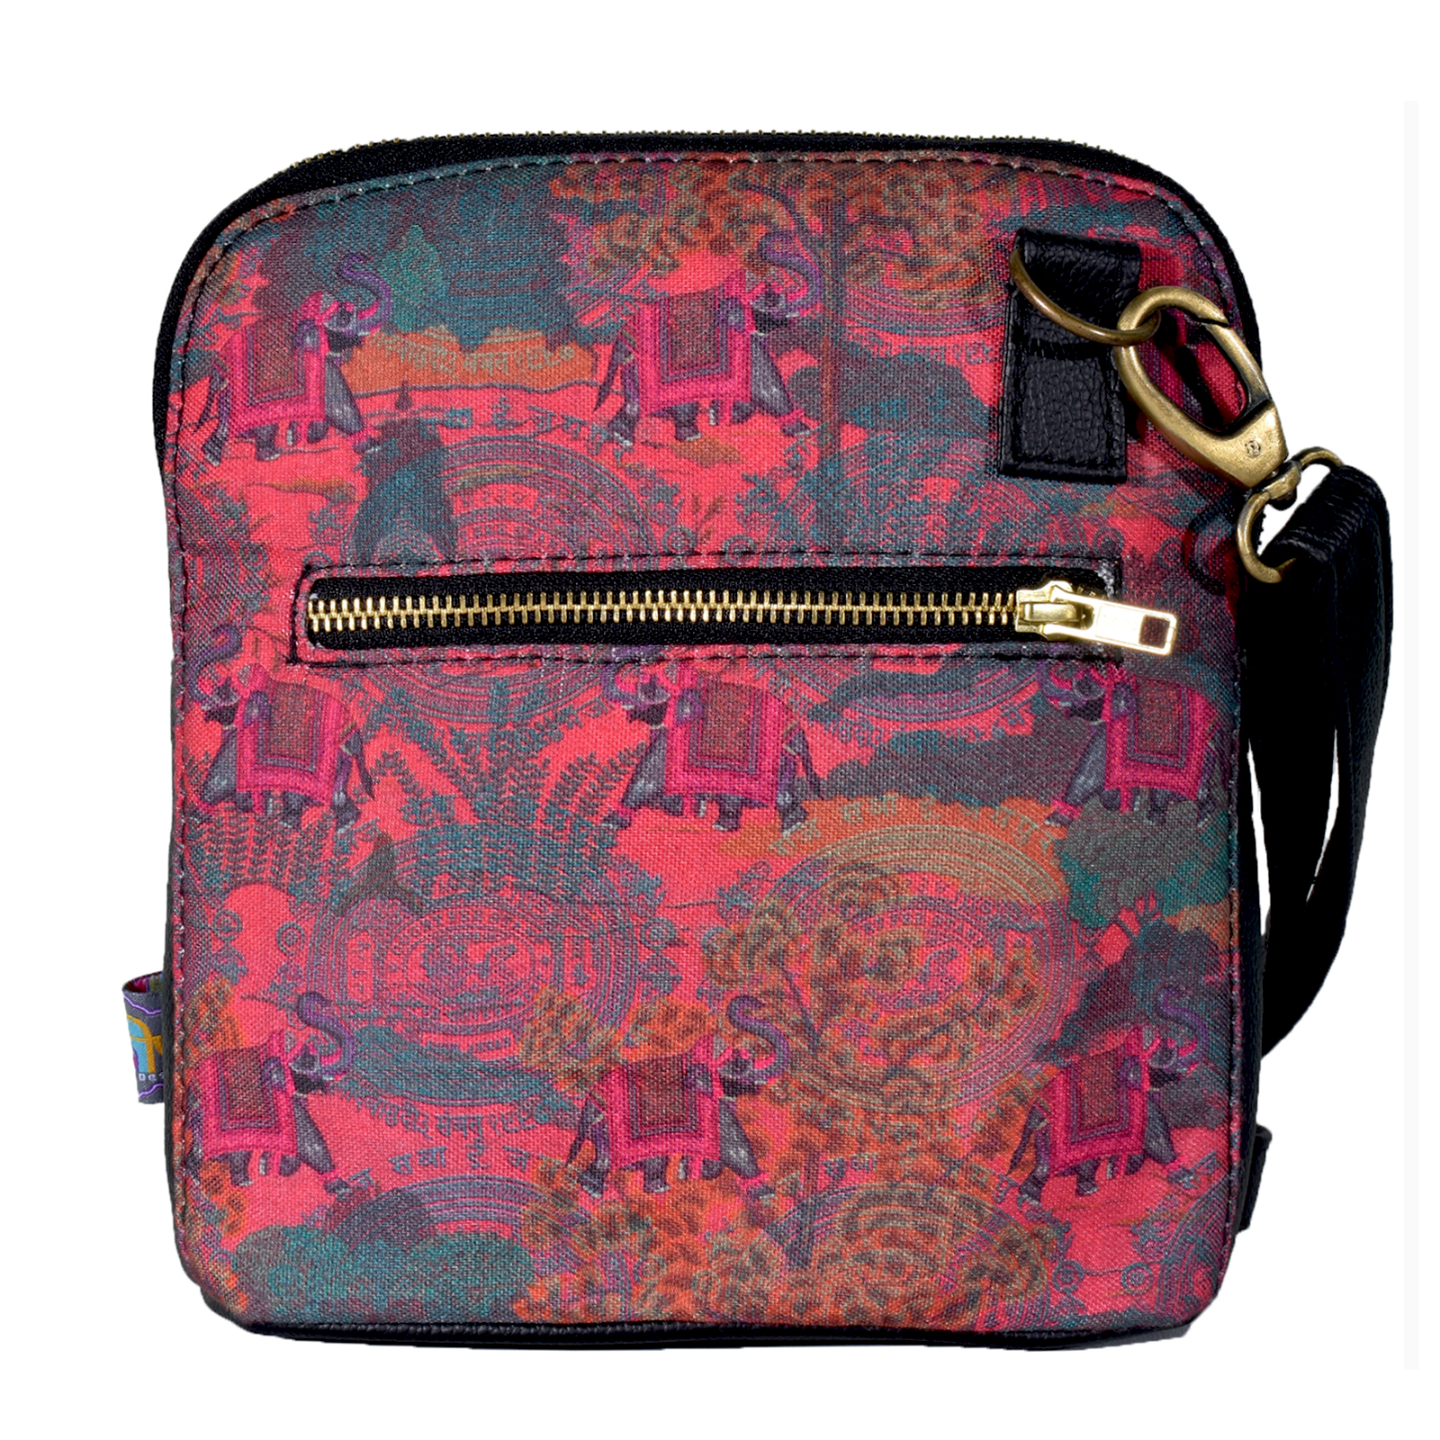 Rajasthani Haathi Crossbody Bag For Women And Girls